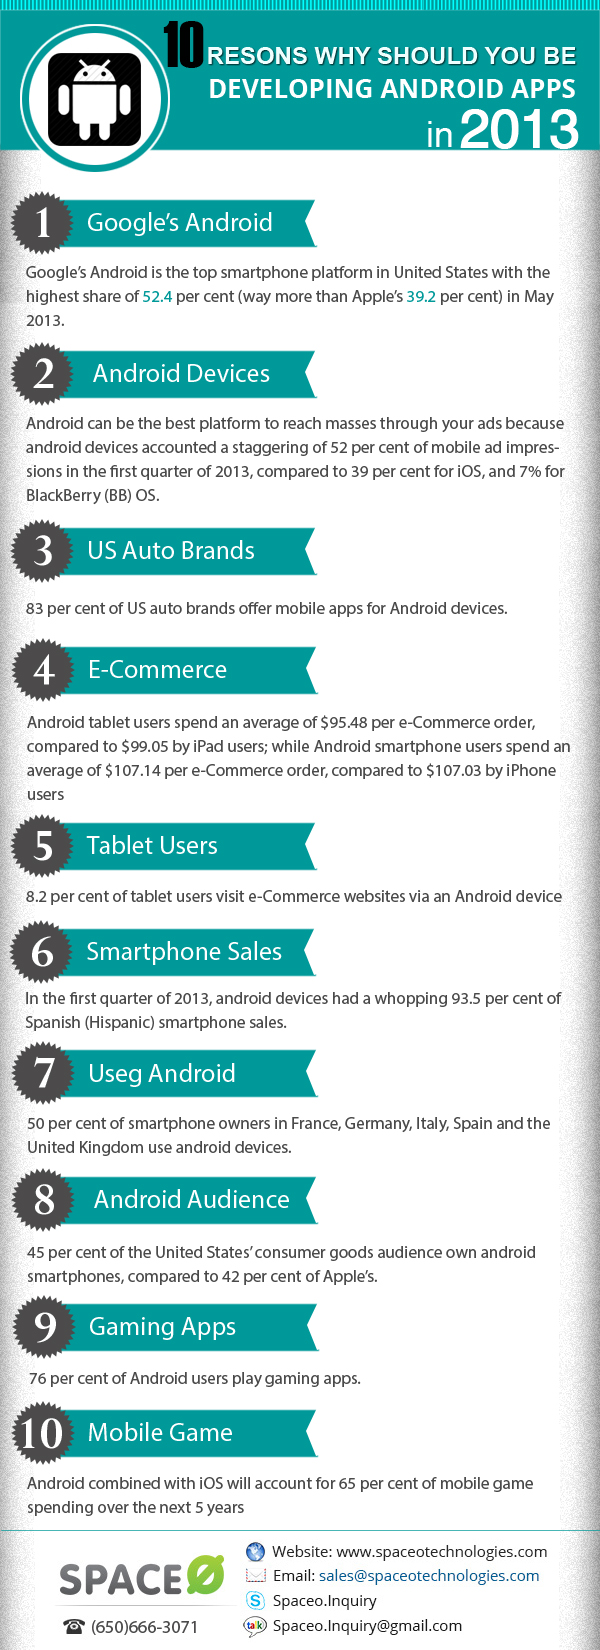 10 Indications of Why Android App Development is Prospective in 2013